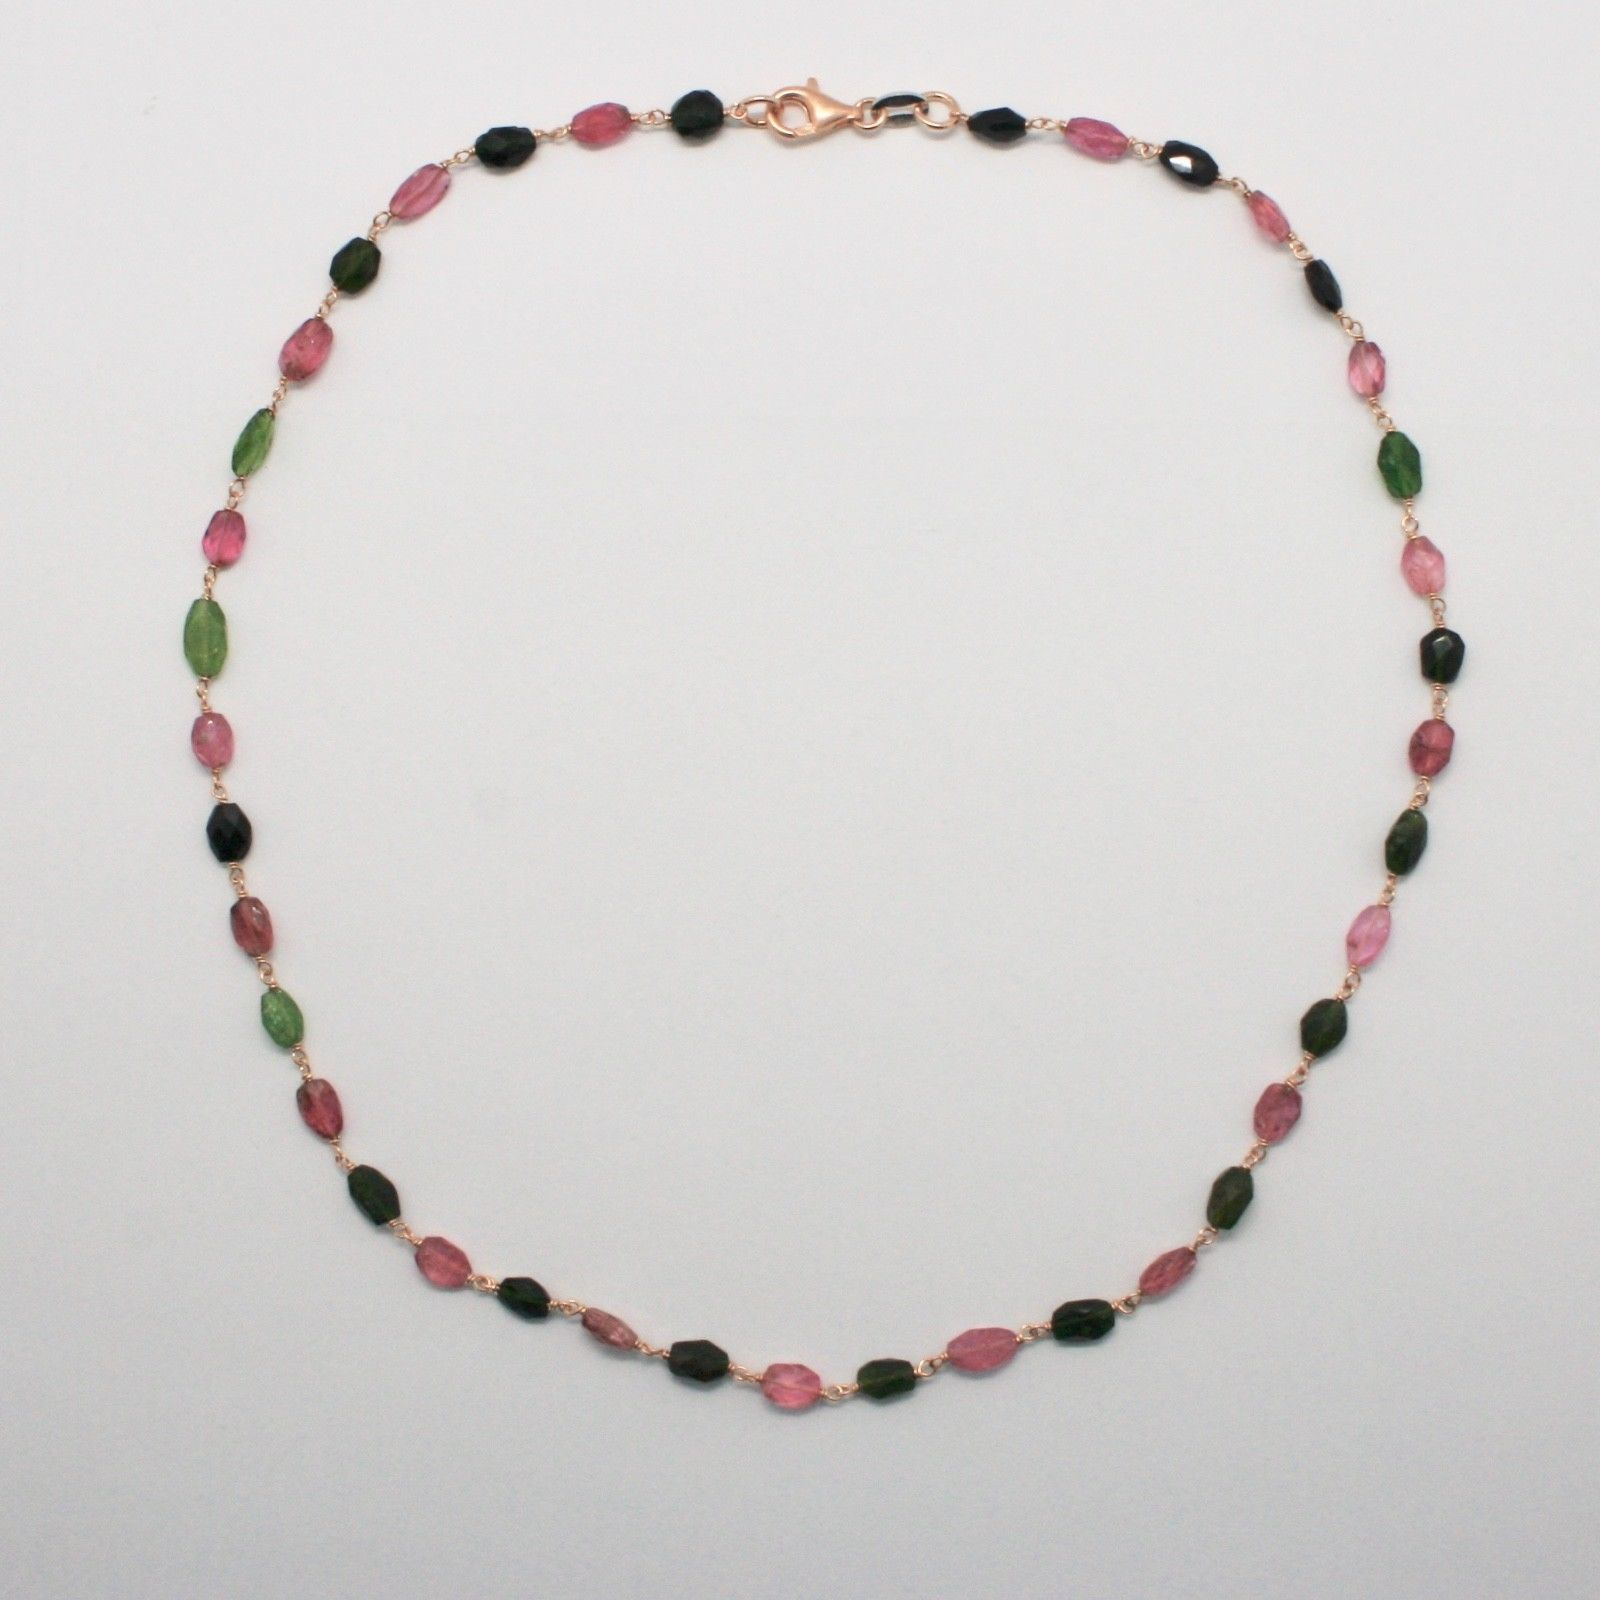 925 STERLING SILVER NECKLACE PINK WITH TOURMALINE GREEN AND PINK FACETED